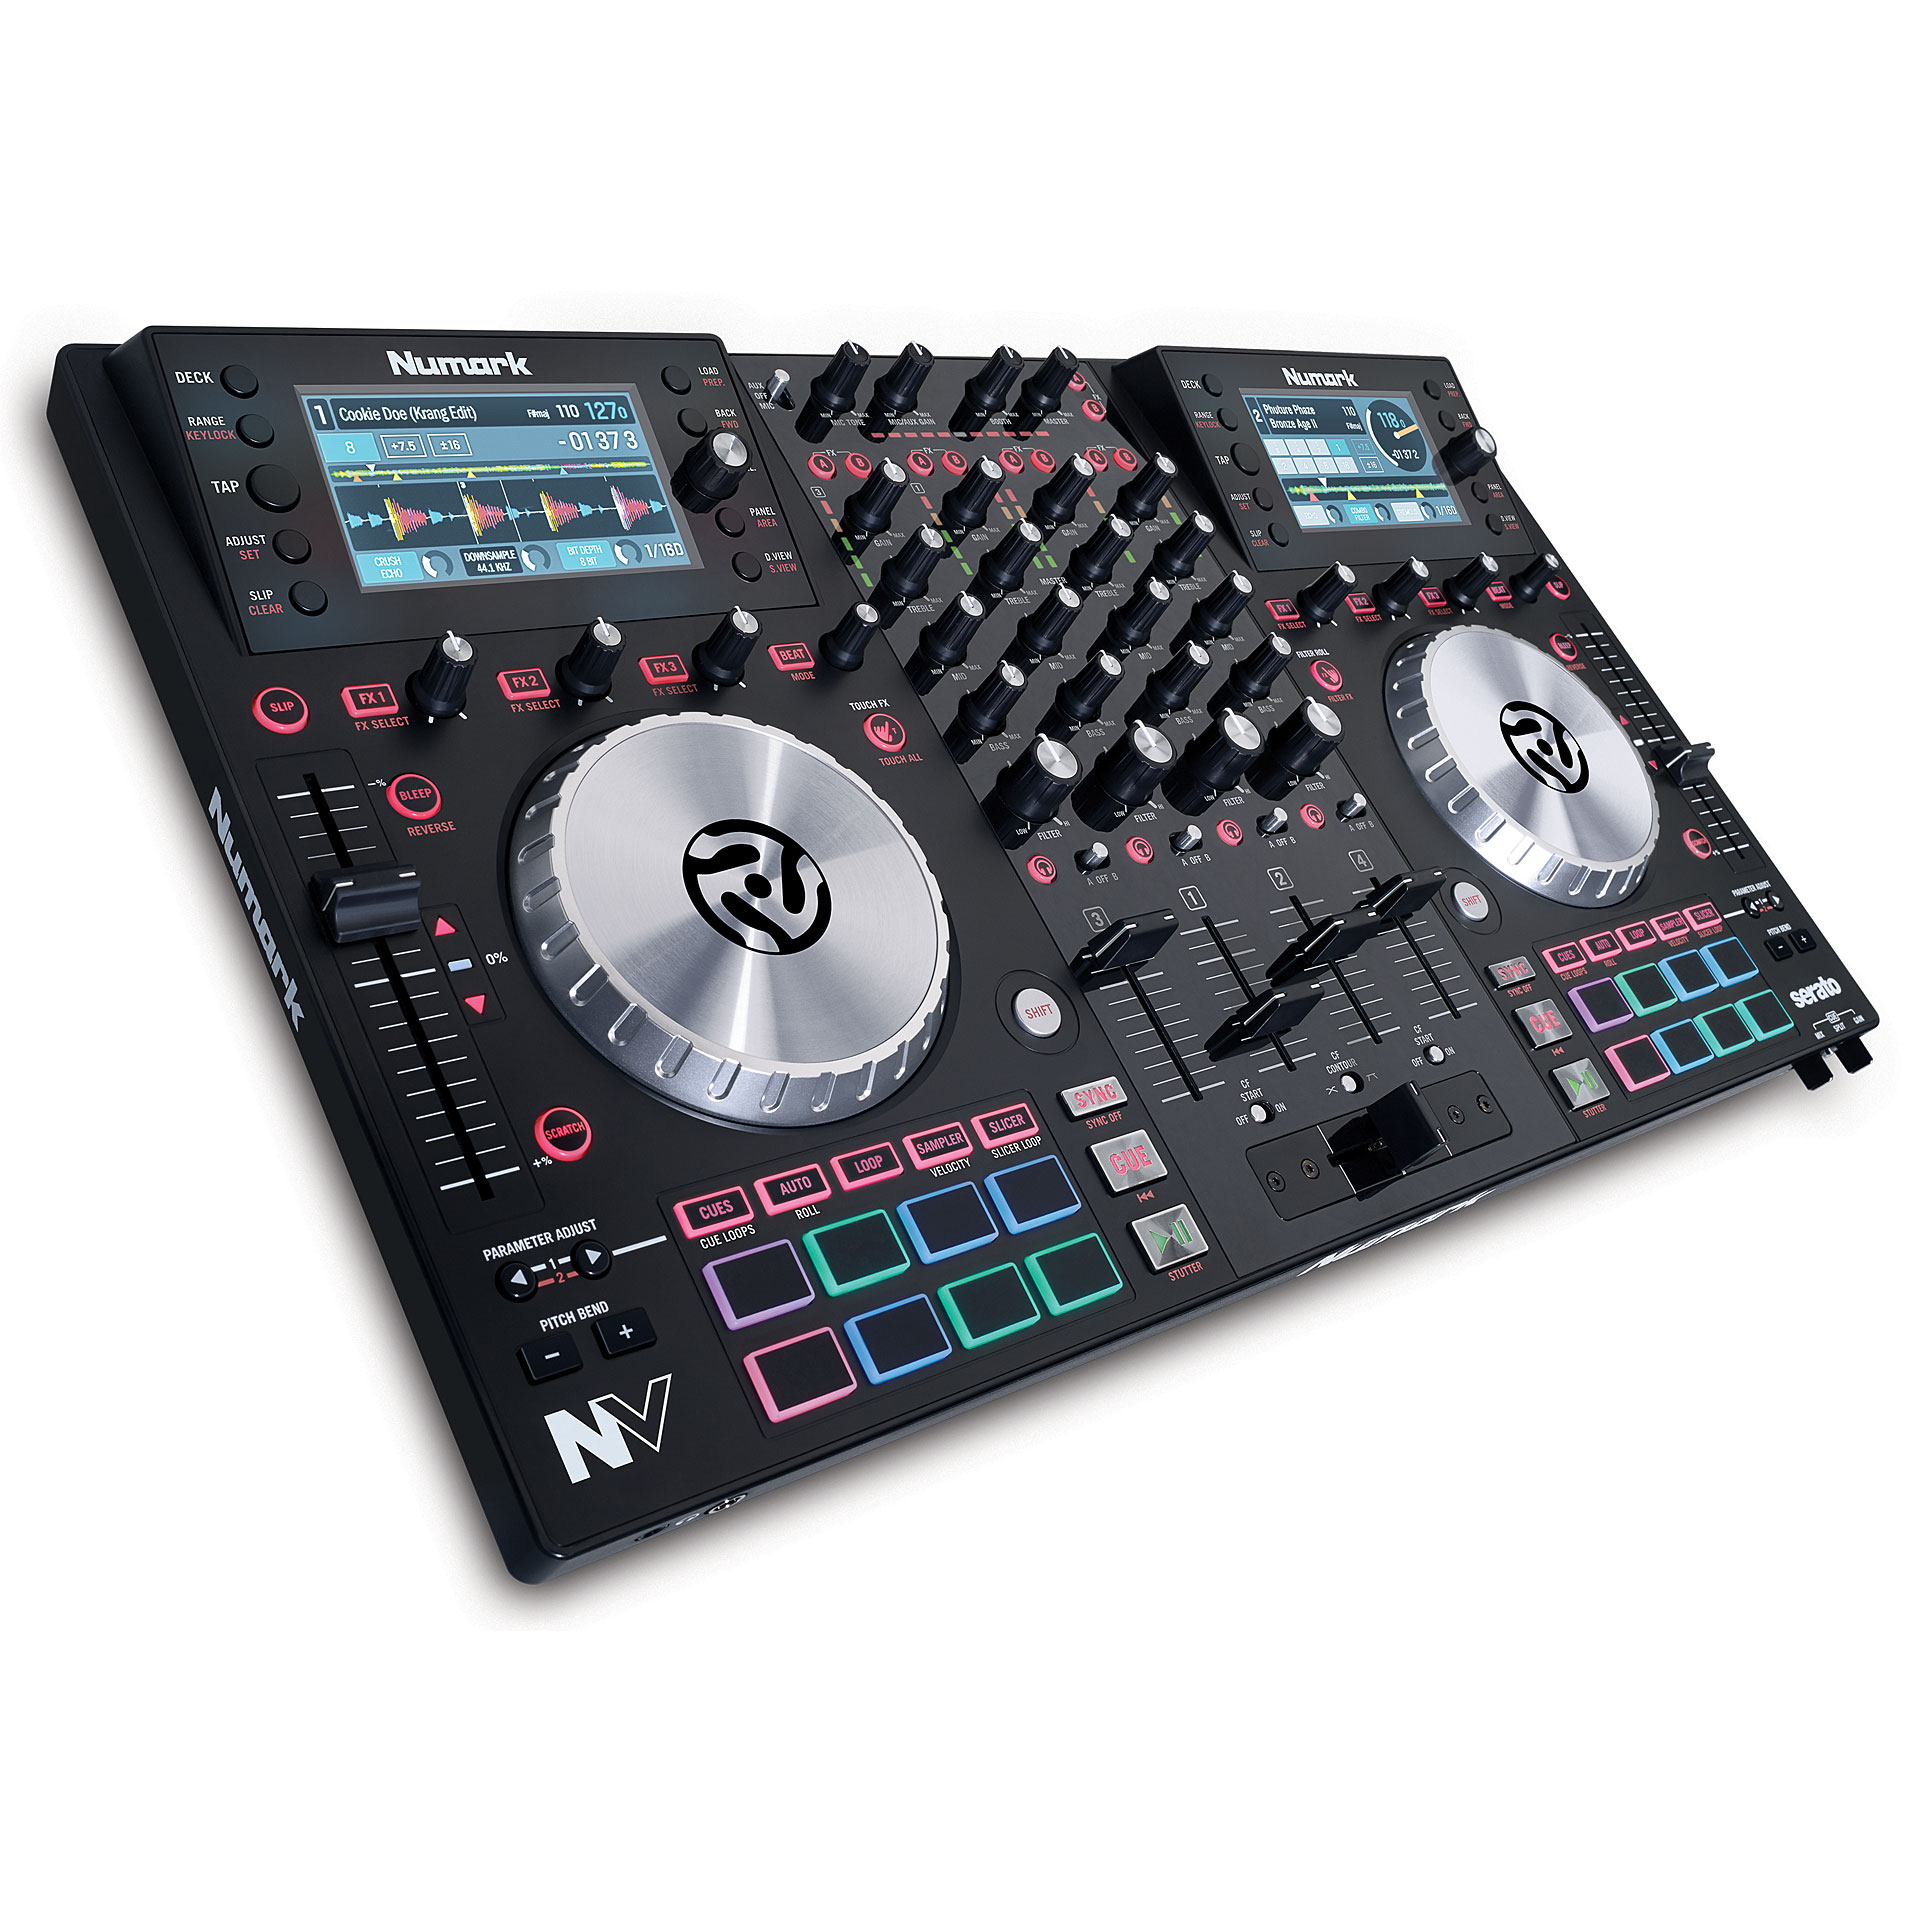 numark nv dj controller. Black Bedroom Furniture Sets. Home Design Ideas